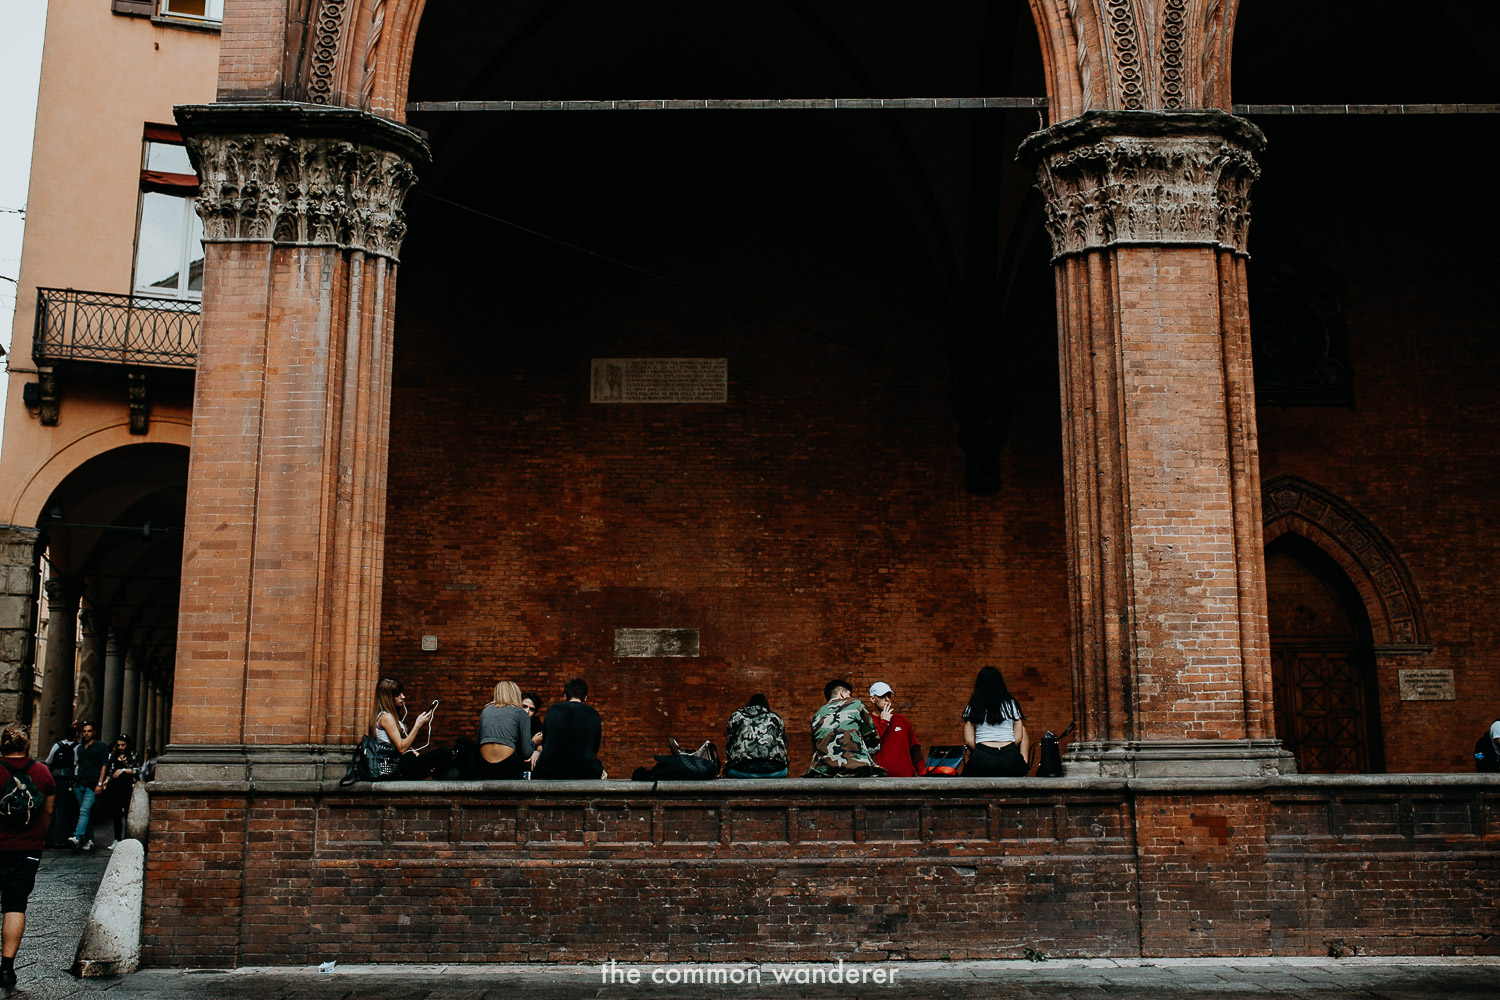 The_Common_Wanderer_best_things_to_do_Bologna-7.jpg